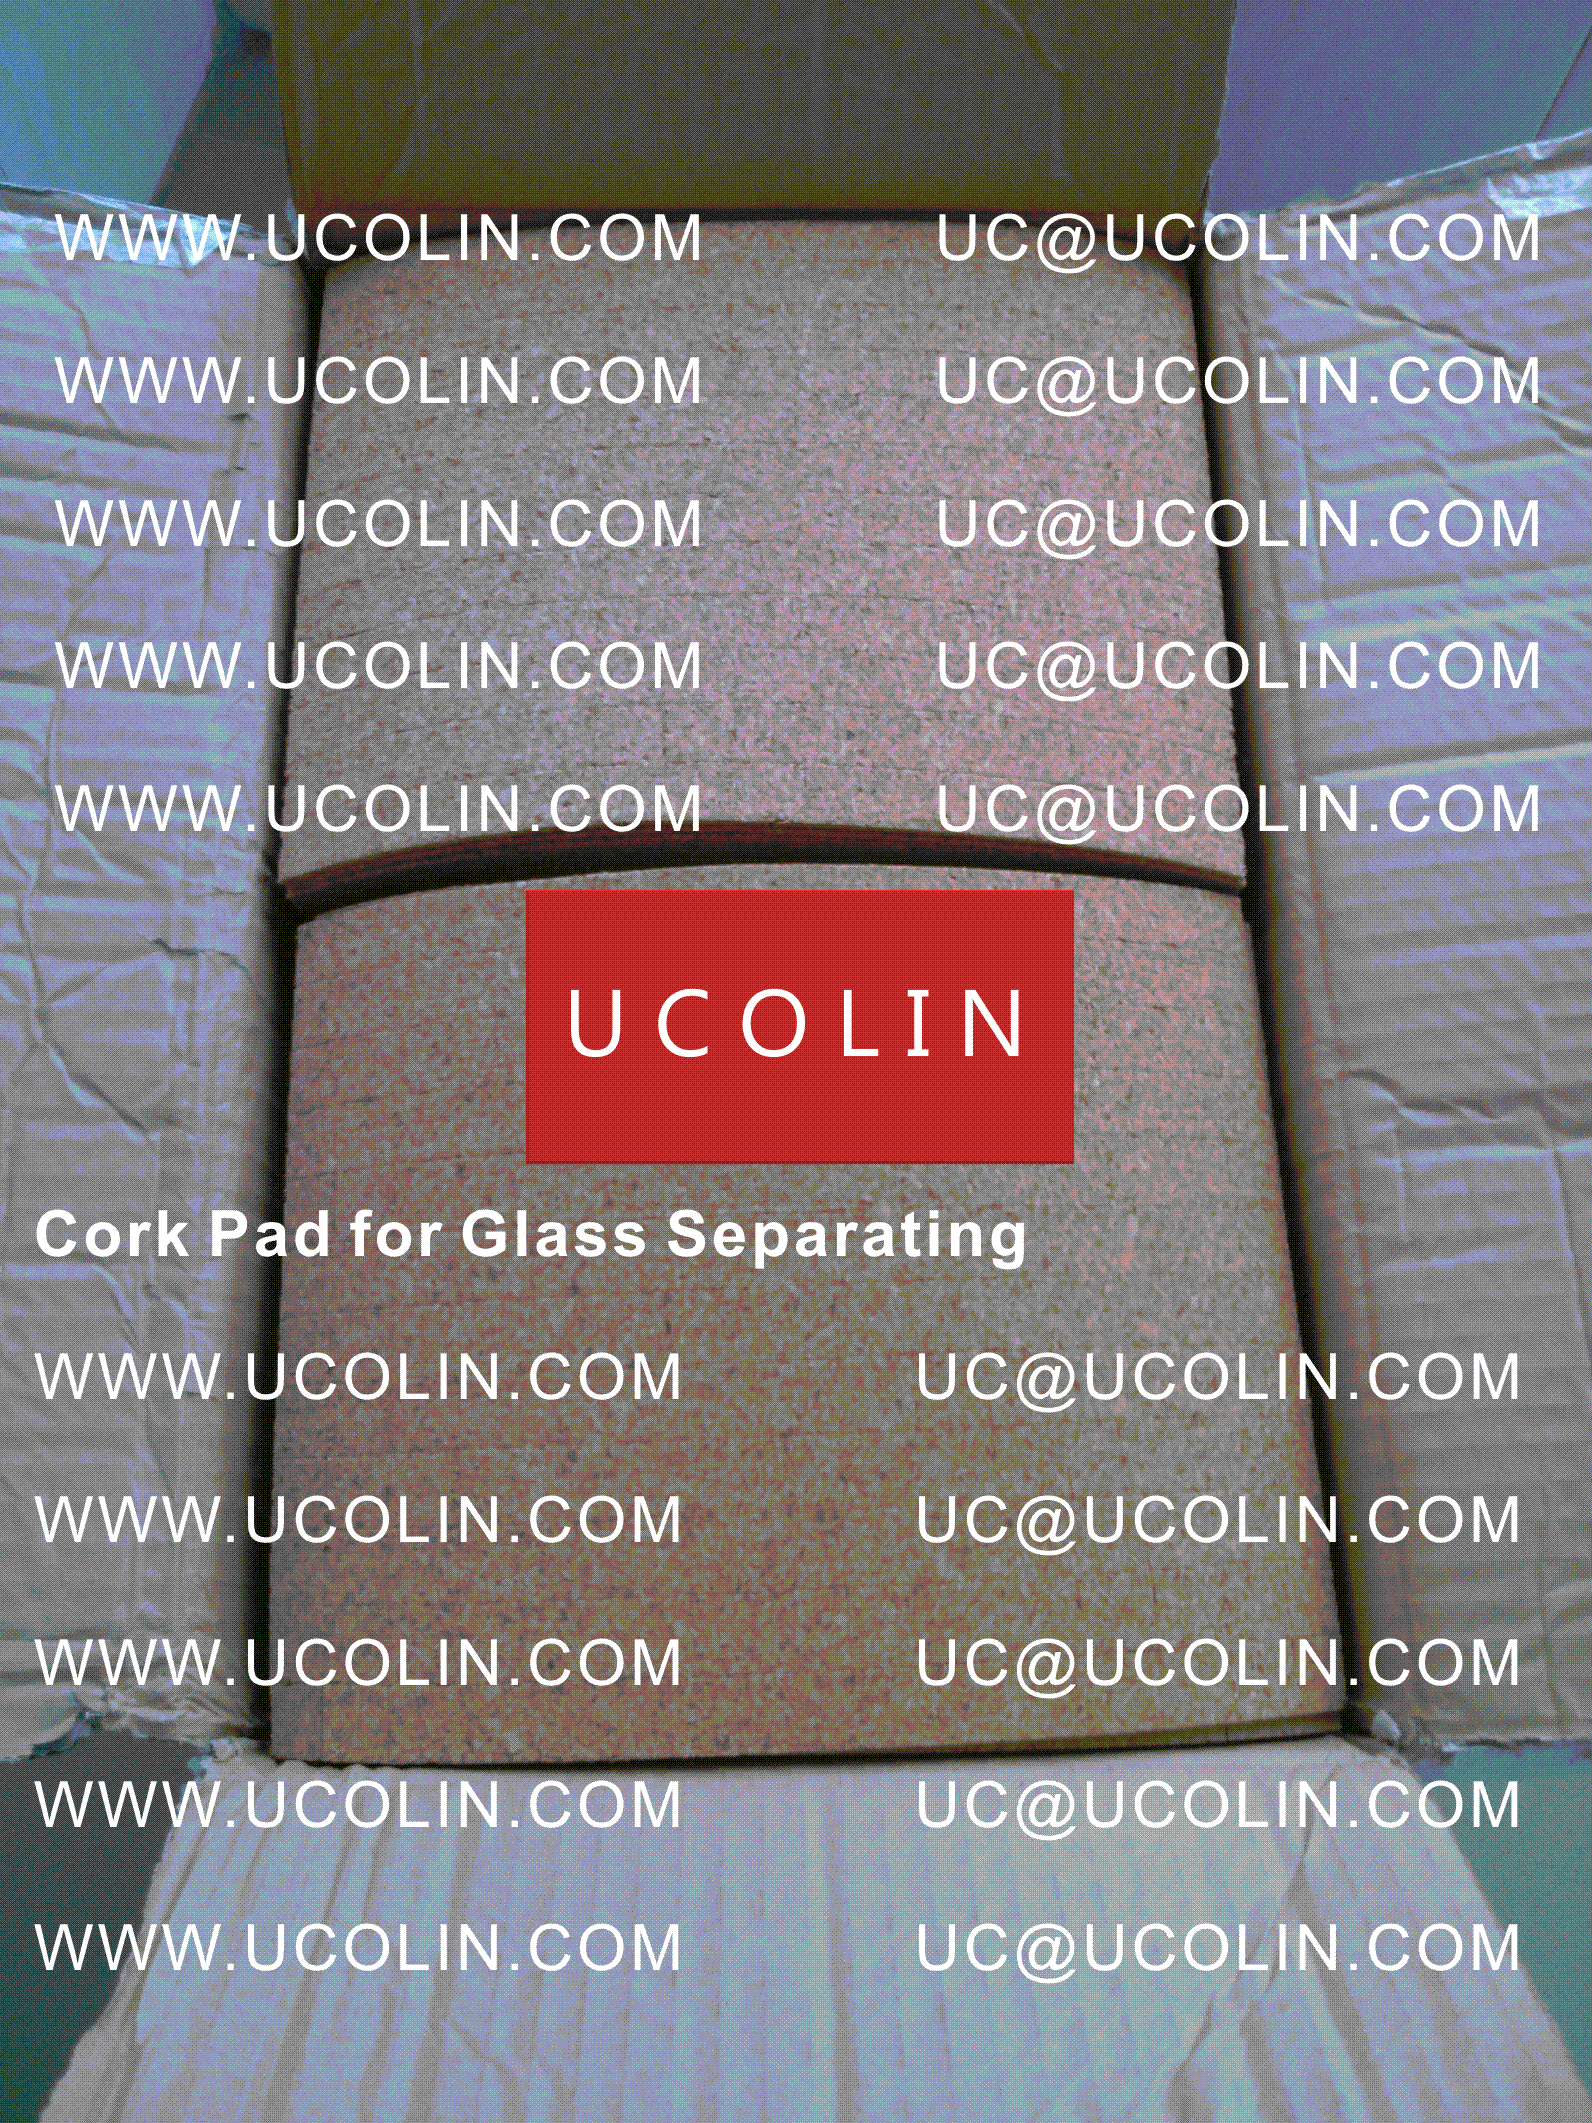 002 Cork Pad for Glass Separating